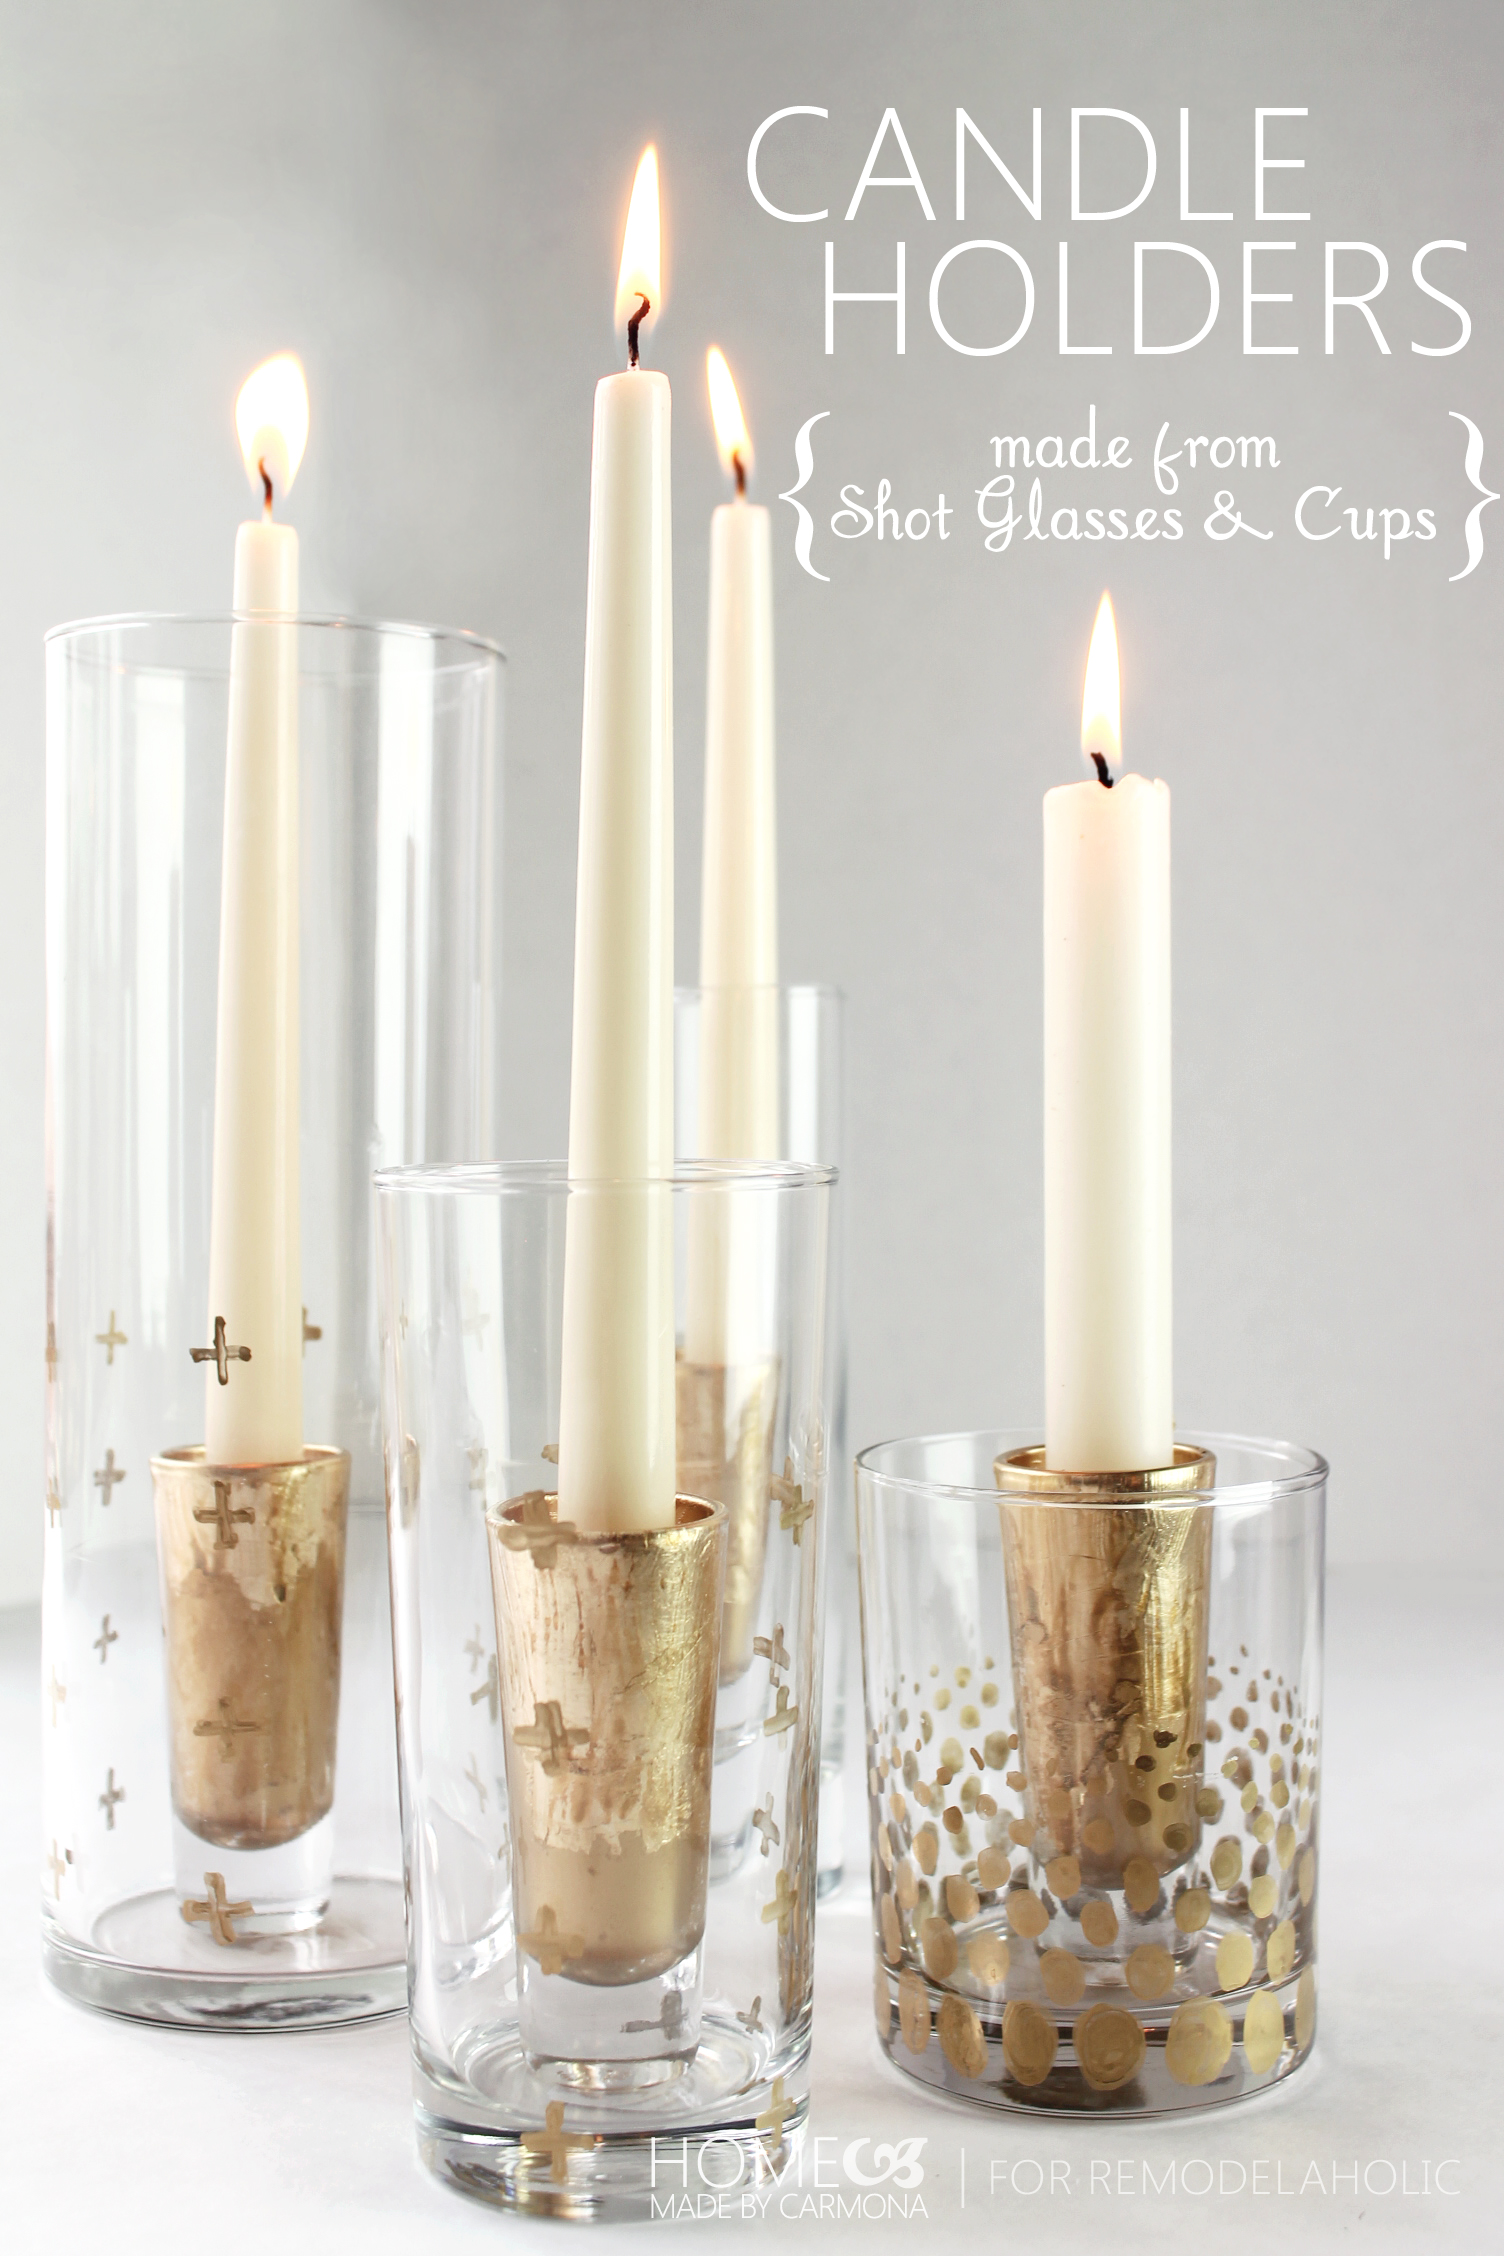 diy candle holders made from shot glasses home made by carmona for remodelaholic - Diy Candle Holders